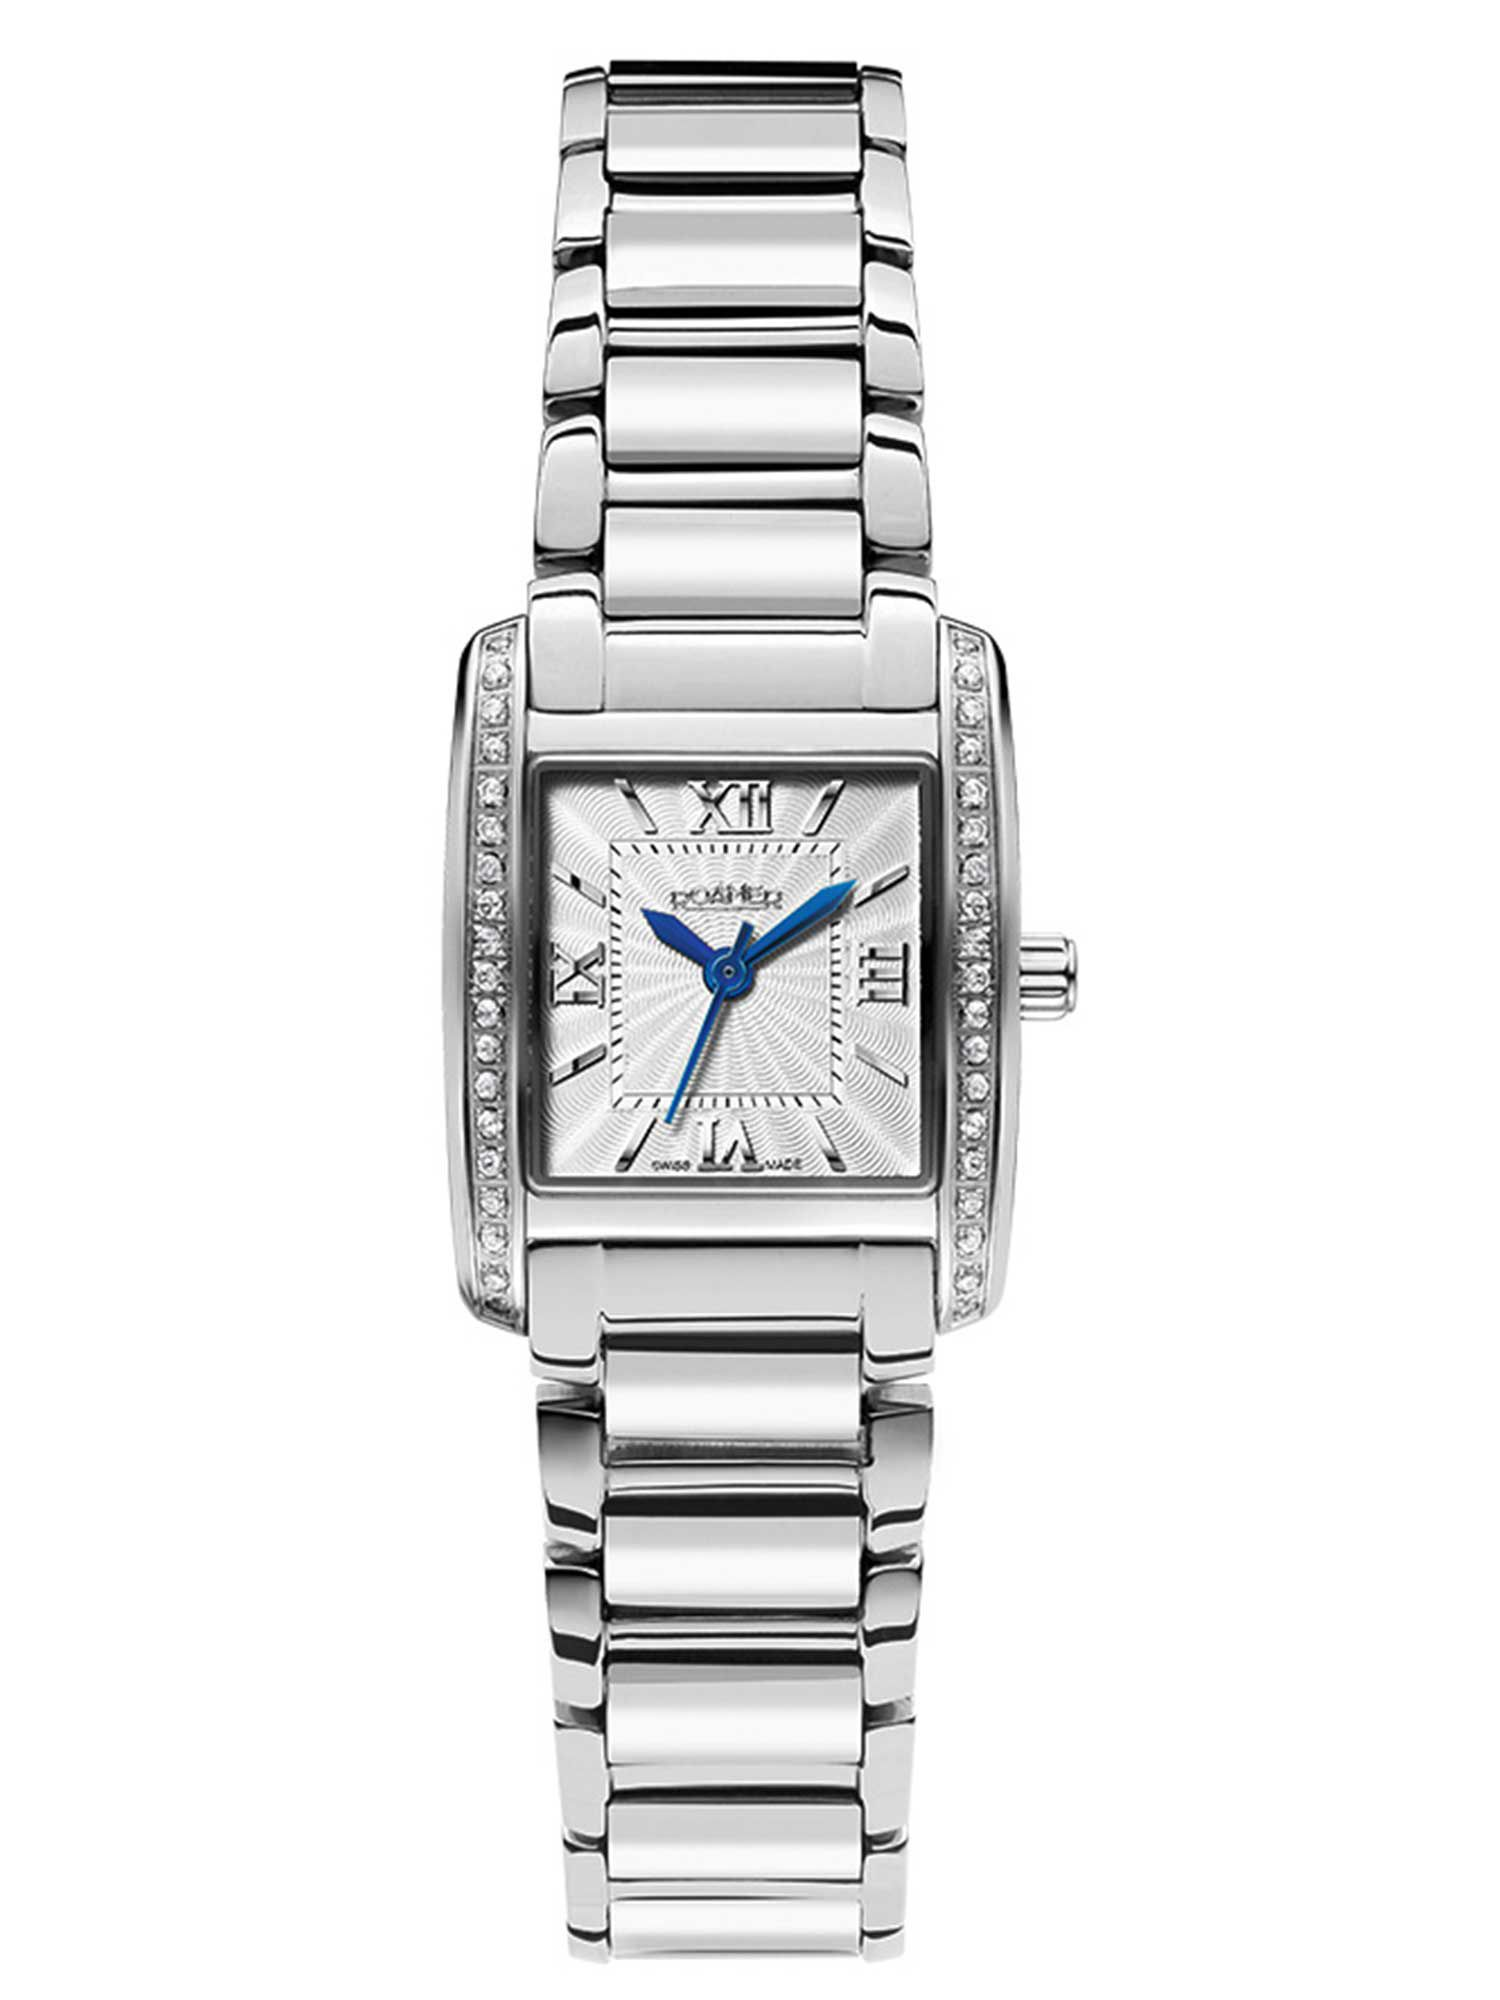 DS75.10ROX Swiss elegance silver ladies watch